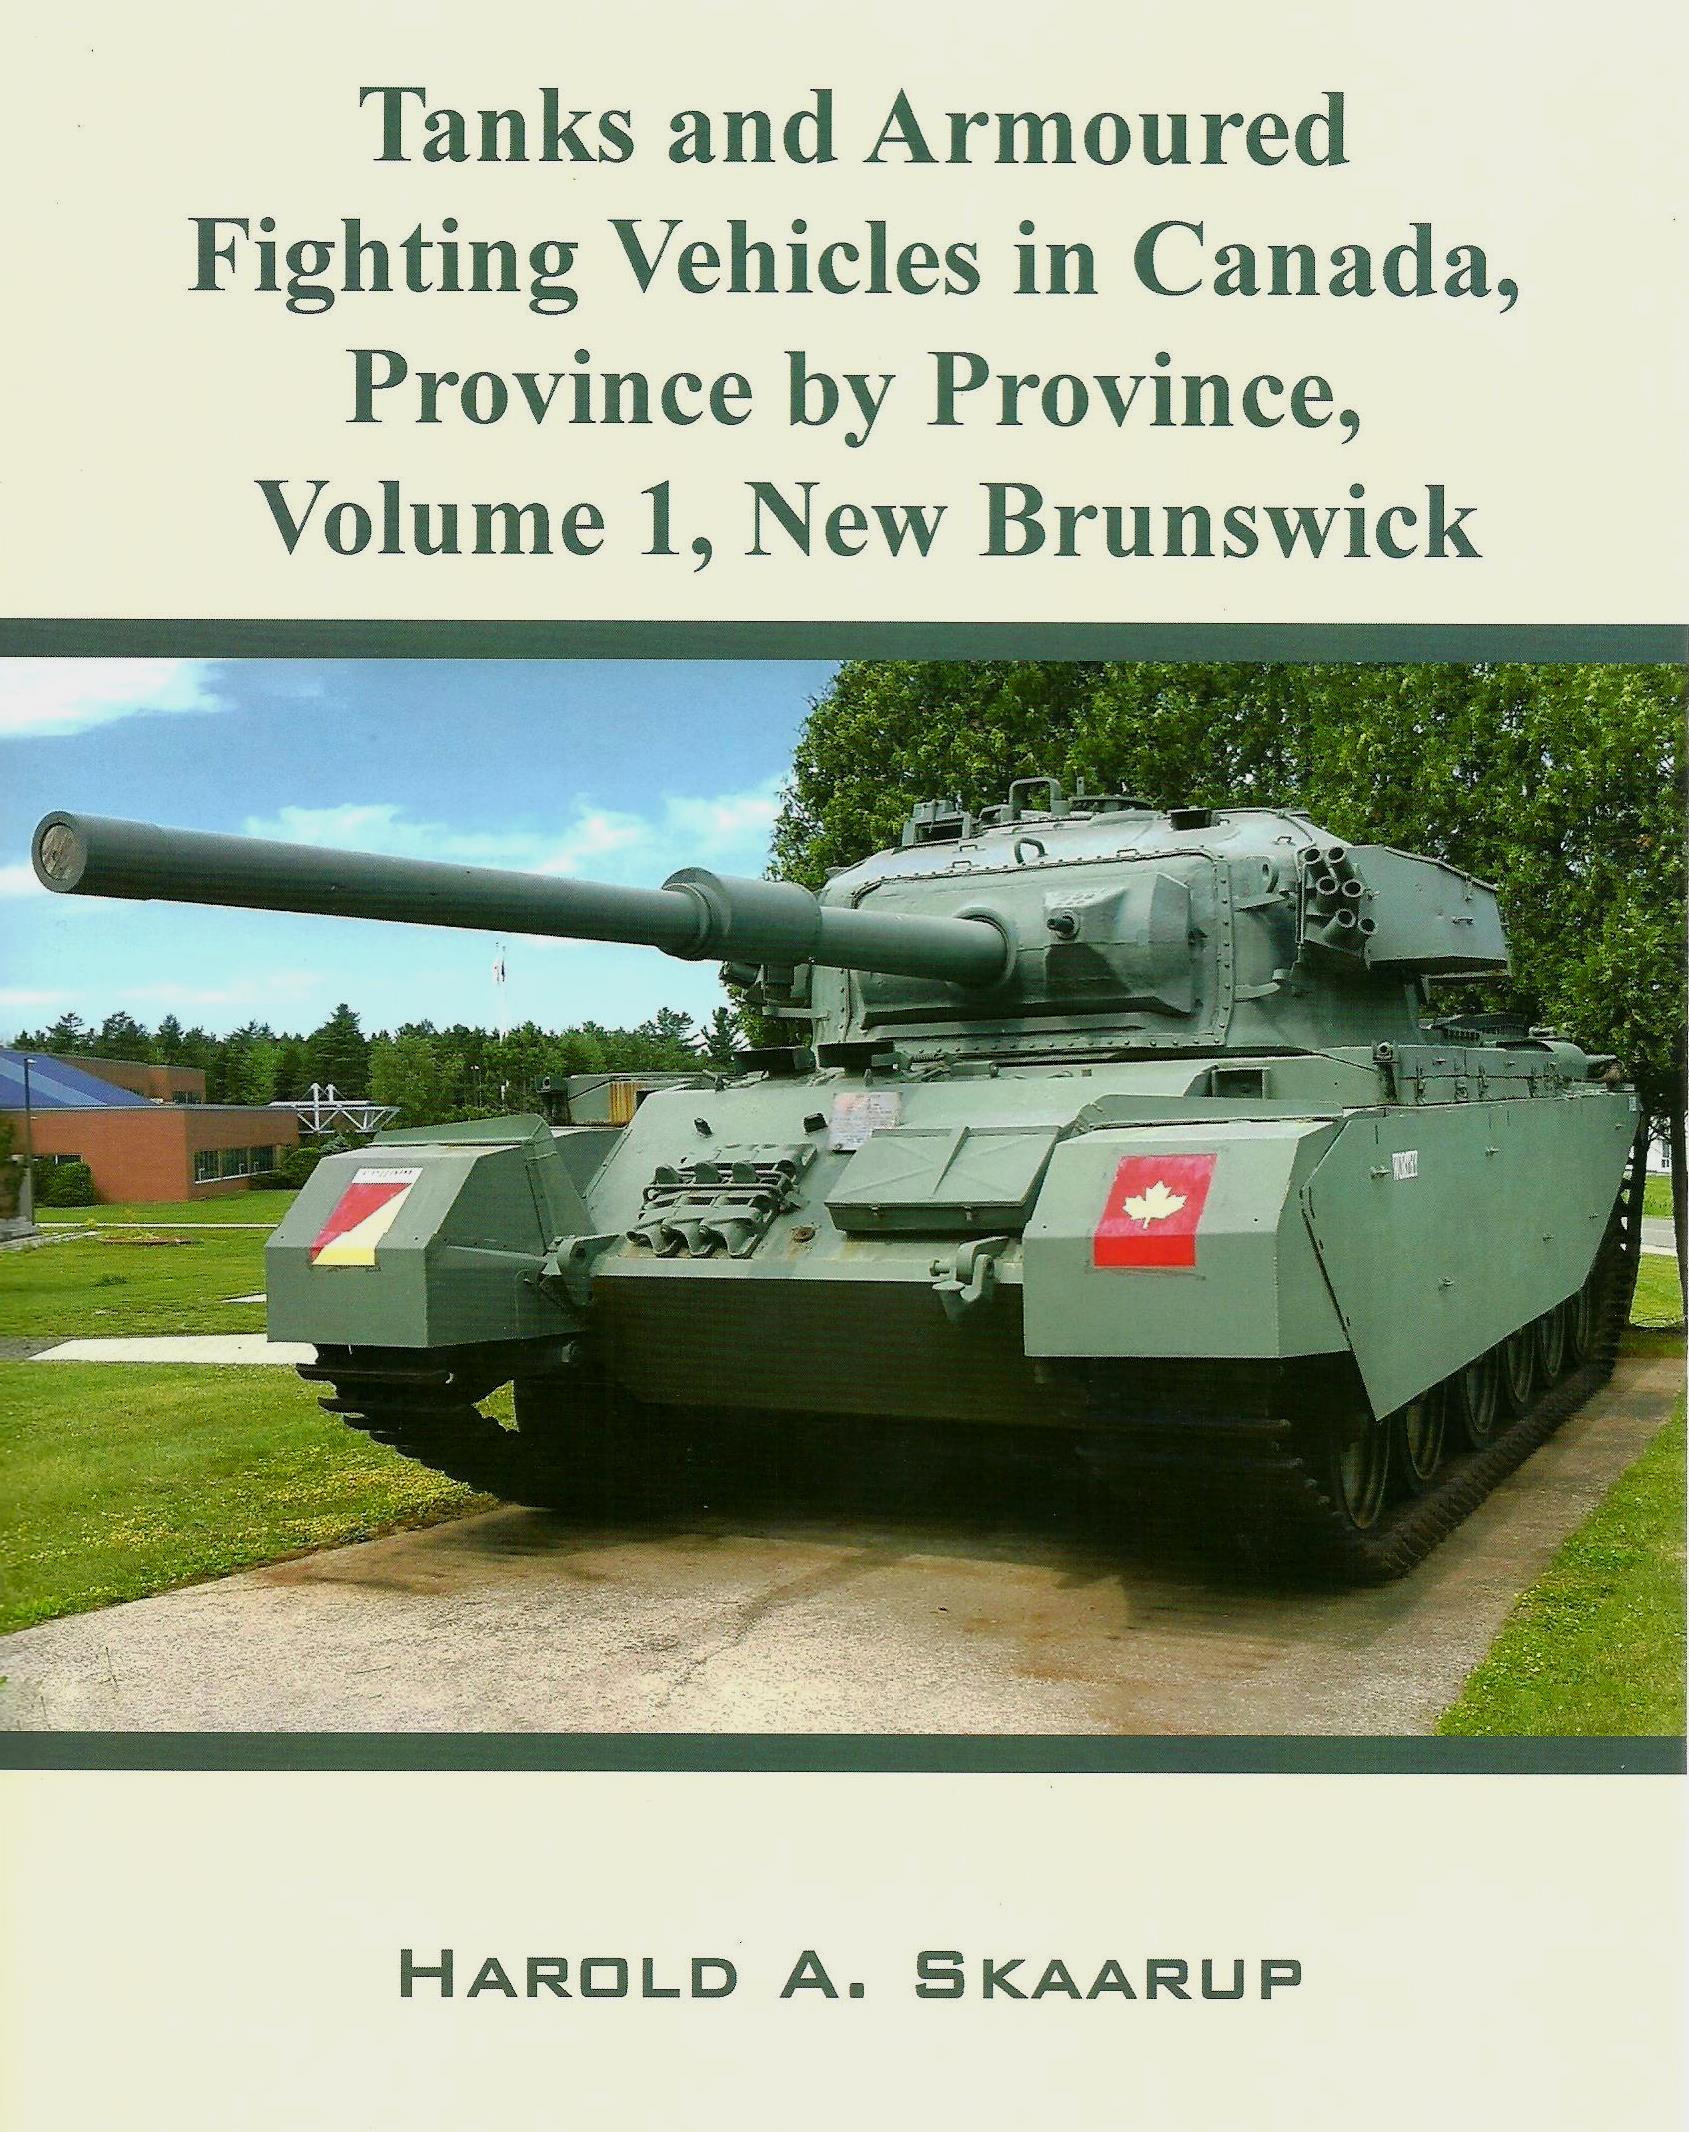 Tanks and Armoured Fighting Vehicles in Canada, Province by Province, Volume 1: New Brunswick